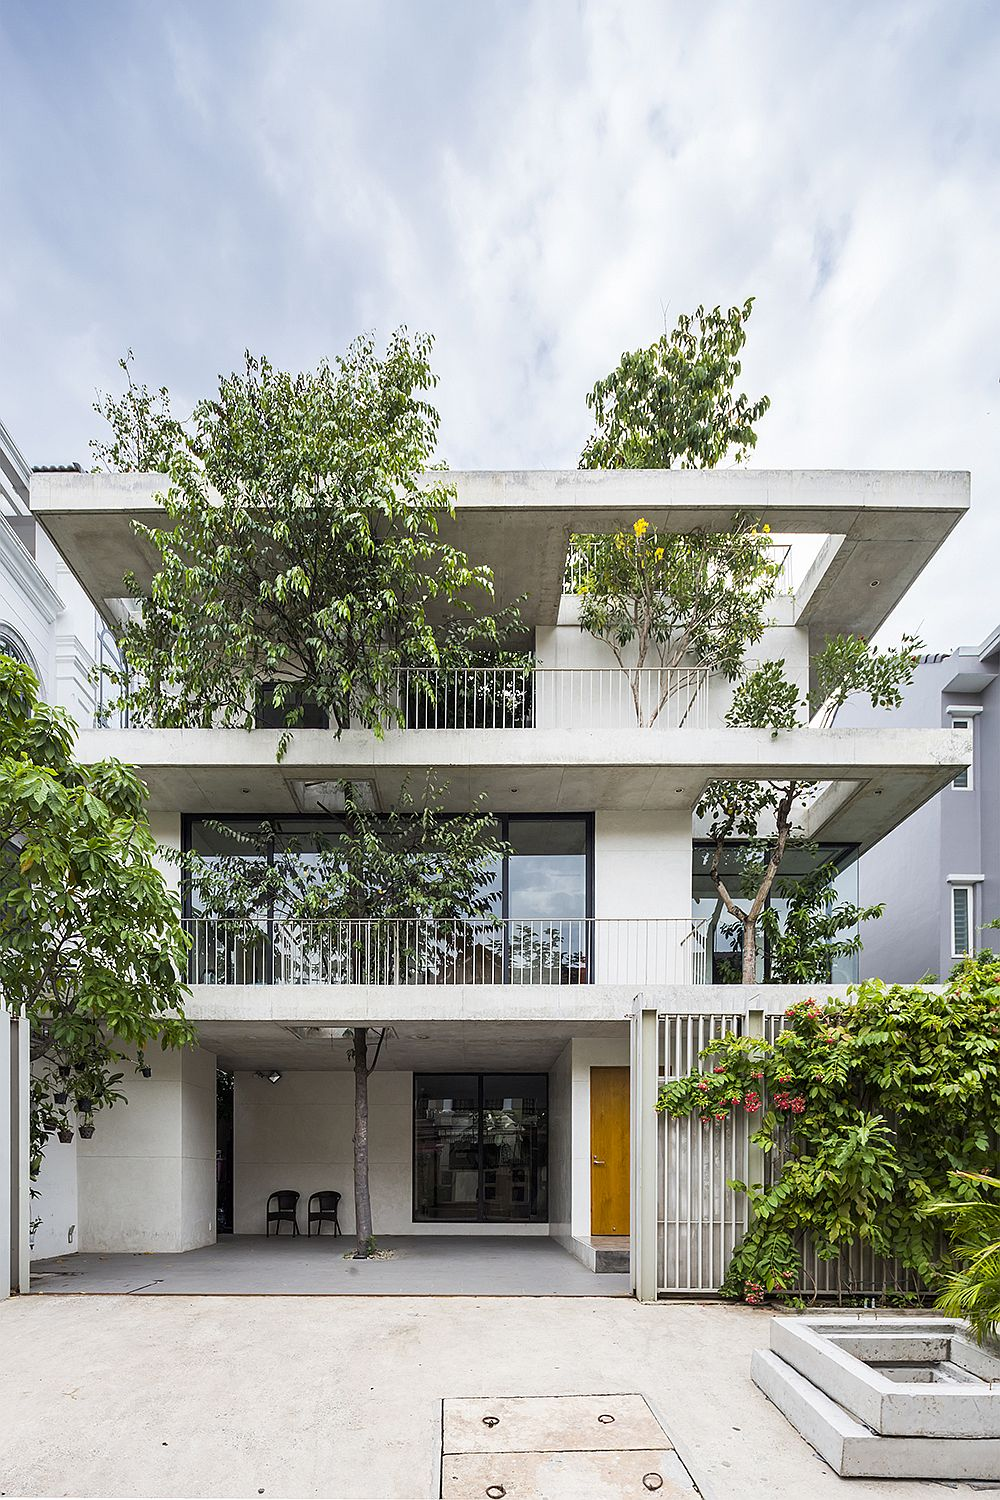 Innovative Stacked Planters House in Ho Chi Minh City, Vietnam